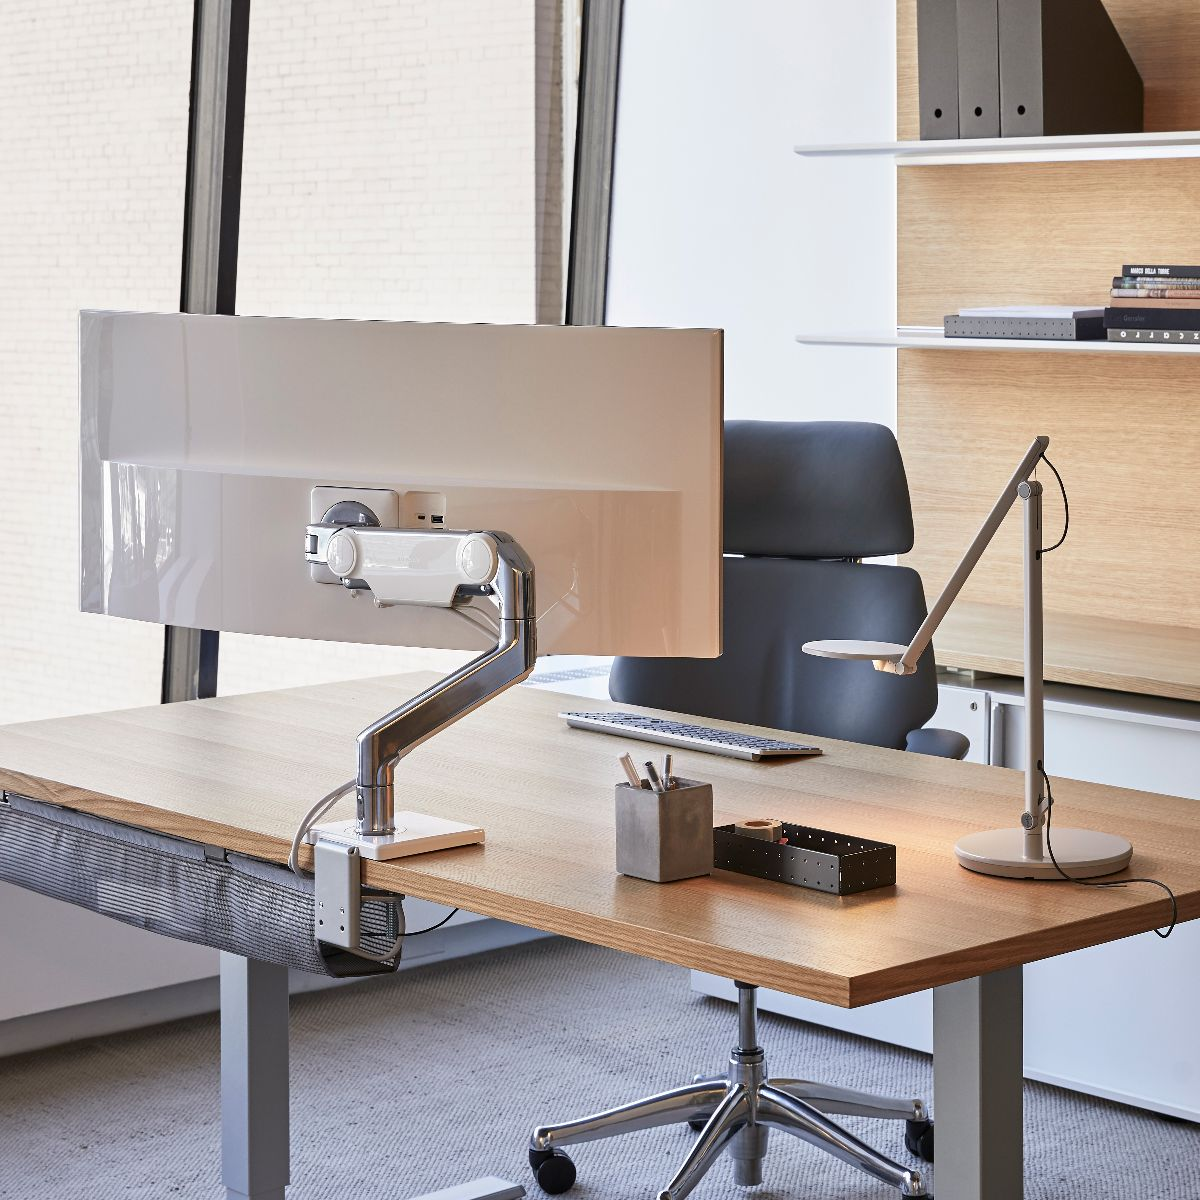 https://fr.humanscale.com/userFiles/images/monitorarms/m10/m10_officedesk.jpg